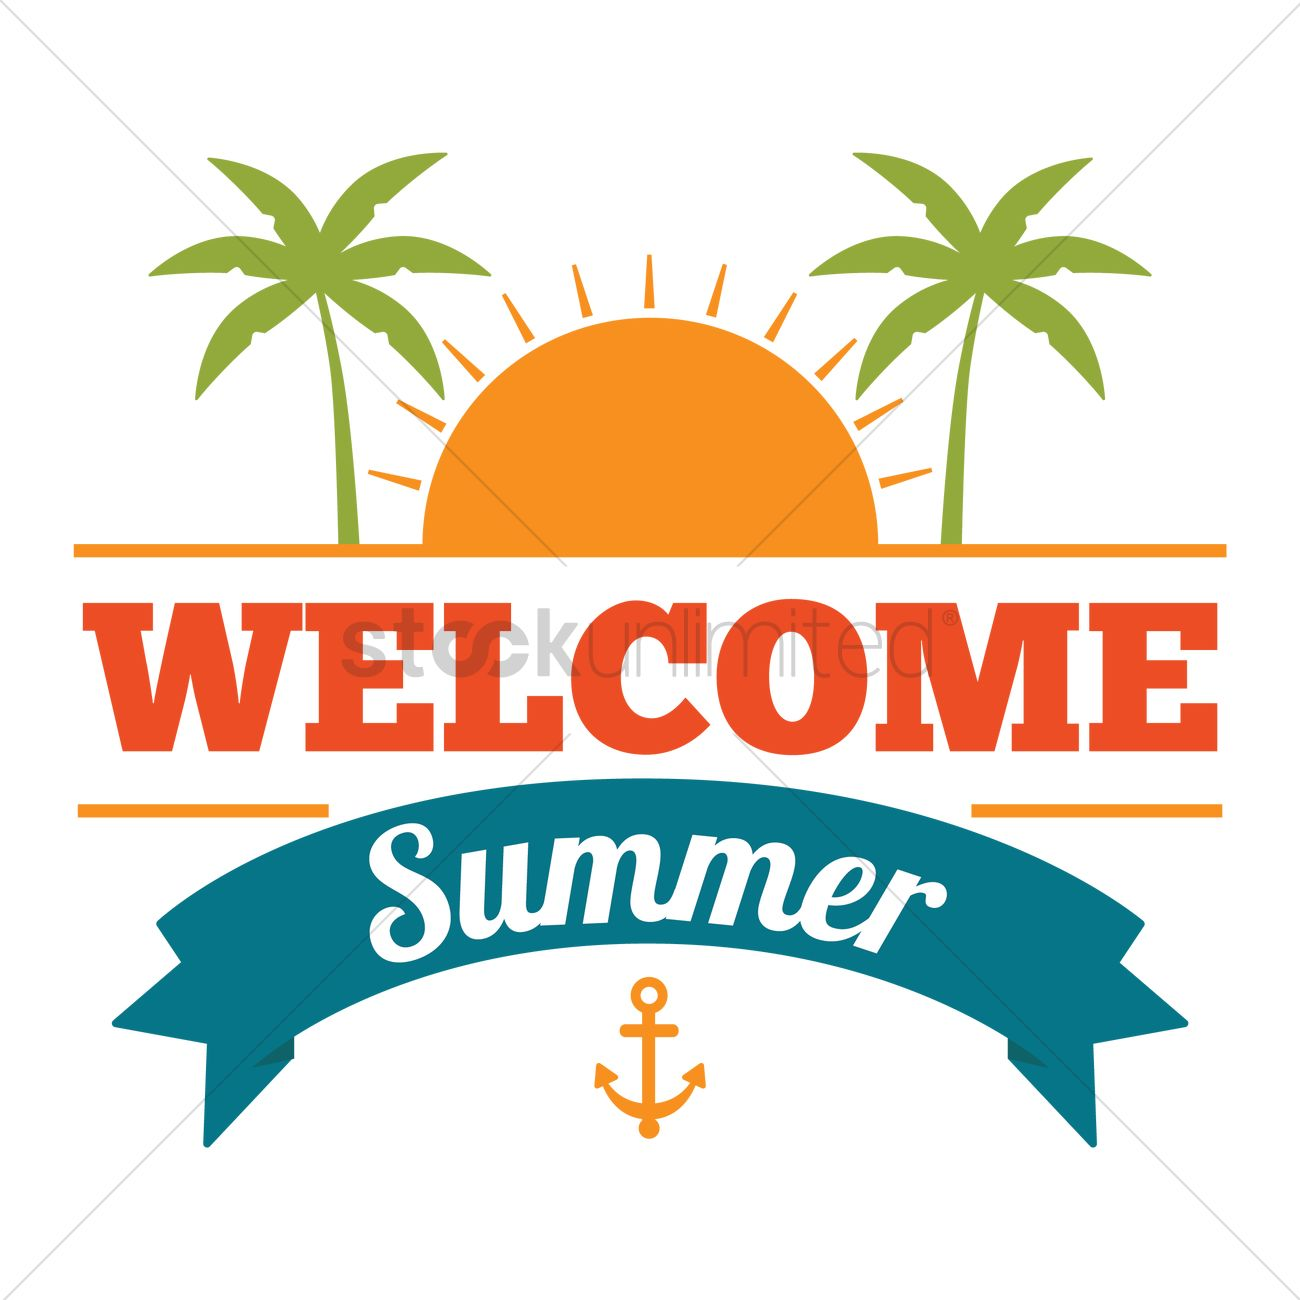 welcome summer design vector image 1809501 stockunlimited rh stockunlimited com